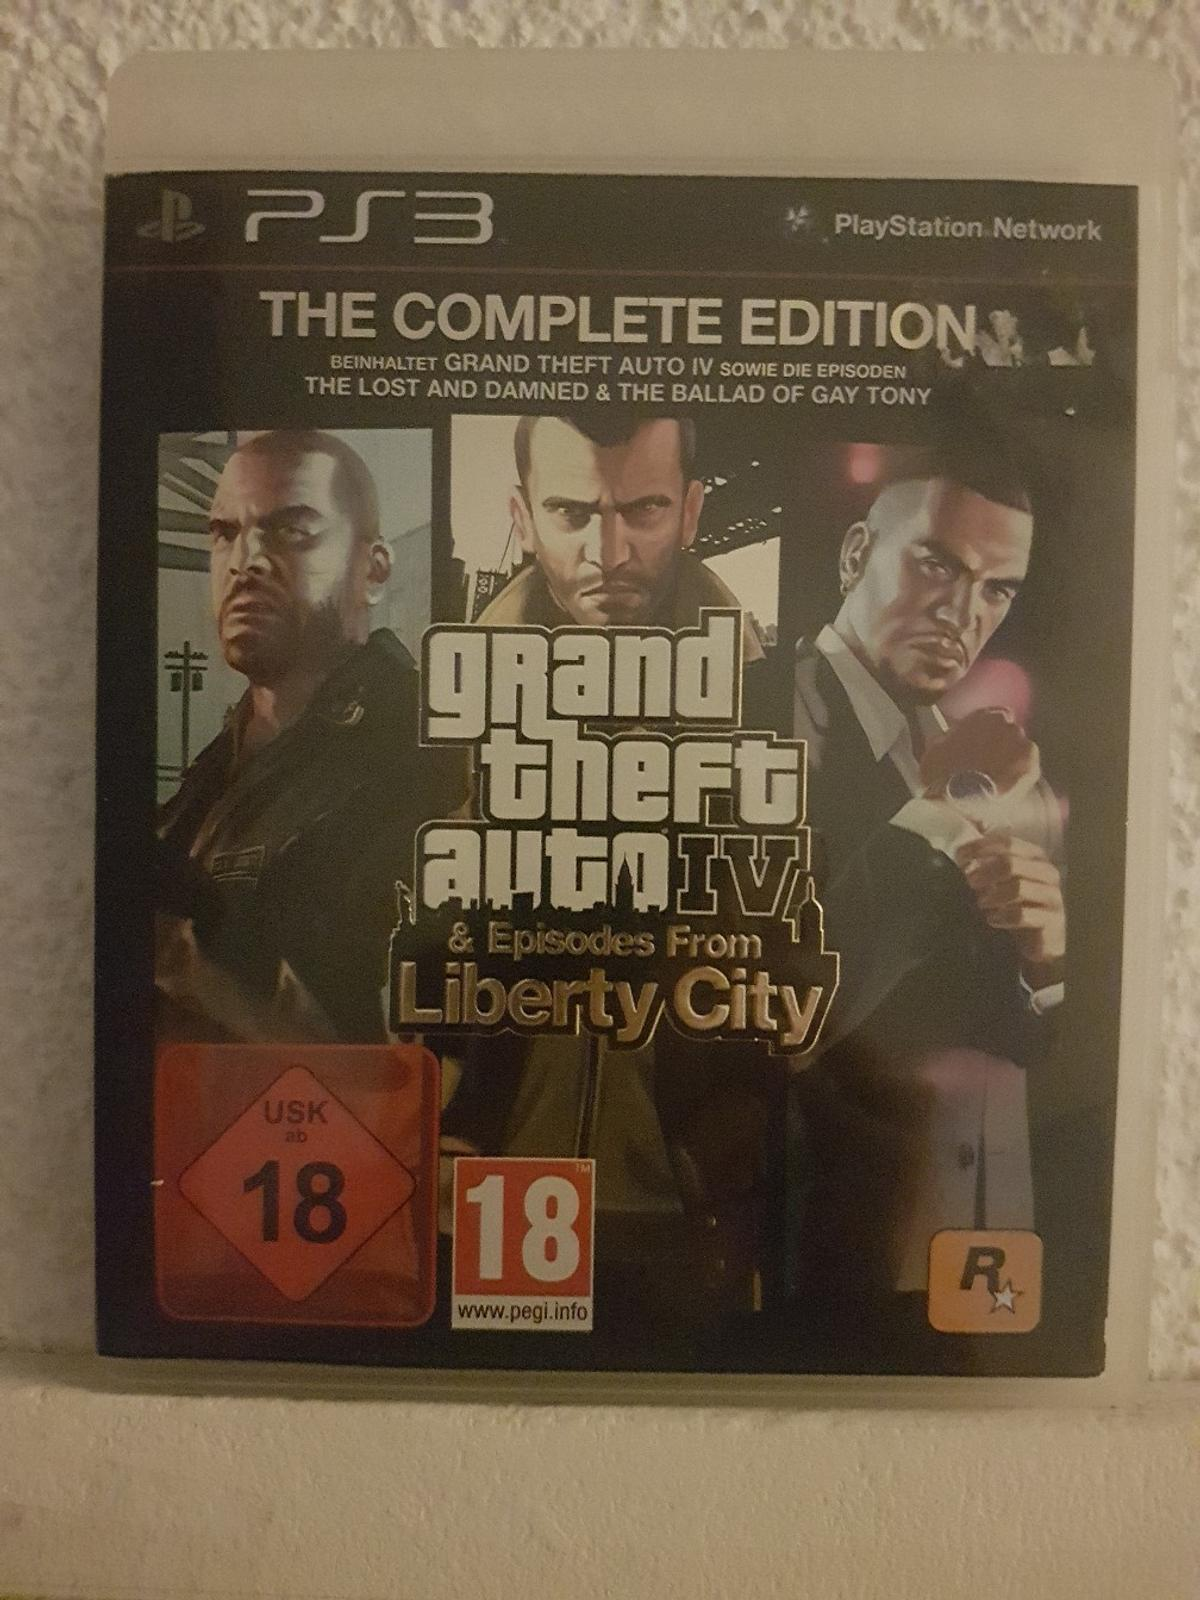 Beinhaltet -GRAND THEFT AUTO IV sowie die Episoden -THE LOST AND DAMNED & THE BALLAD OF GAY TONY